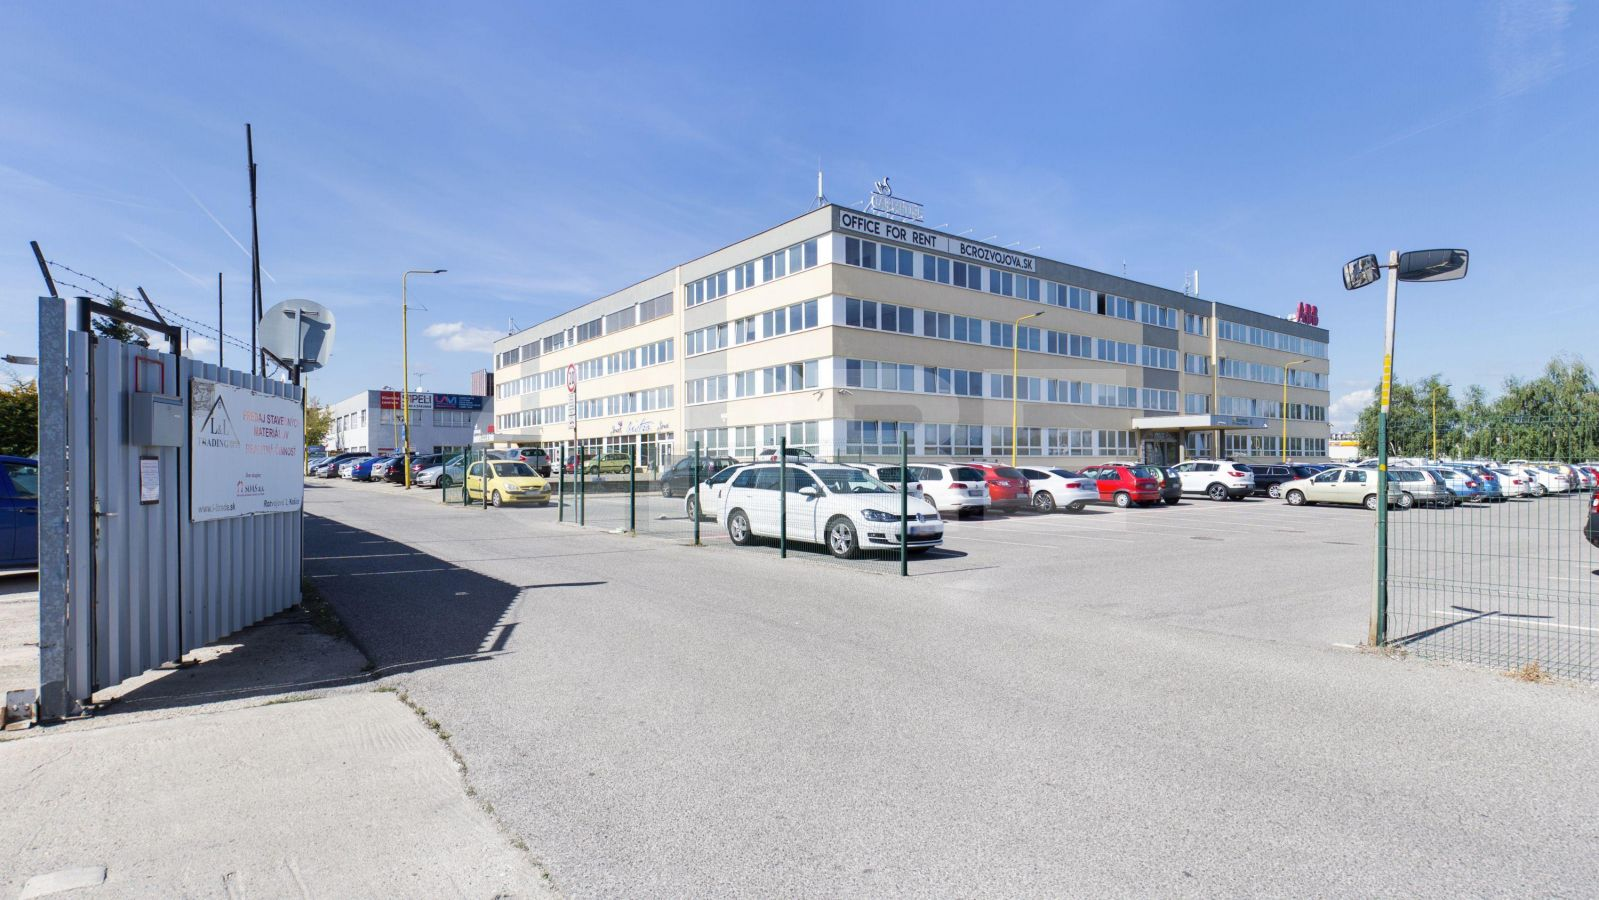 Business Center Rozvojová, Košice, Košice | Offices for rent by CBRE | 1